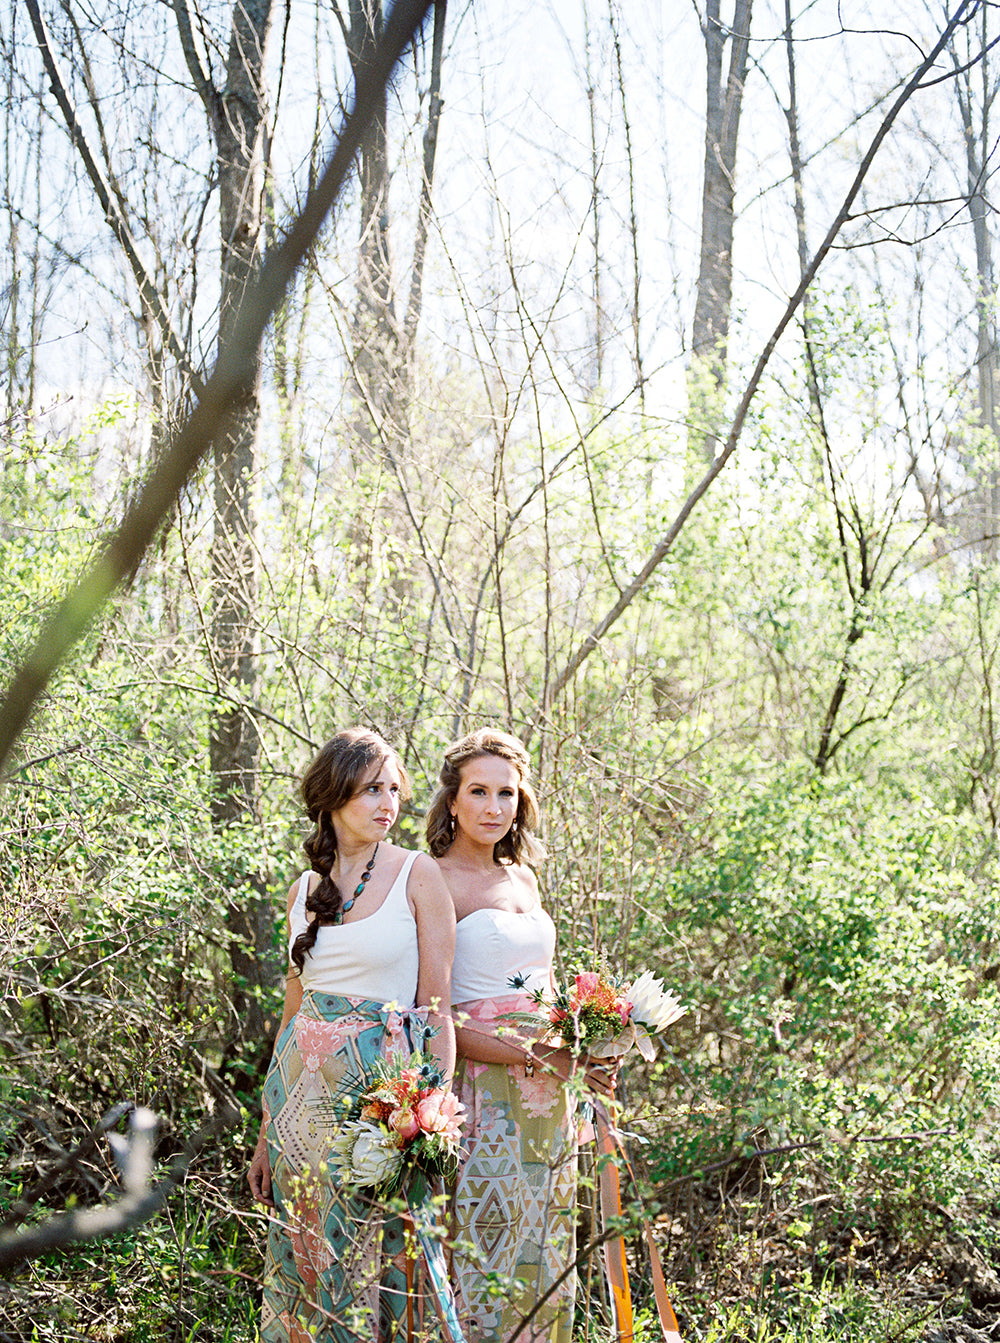 firelight-camps-wedding-inspiration-stacy-k-floral-28